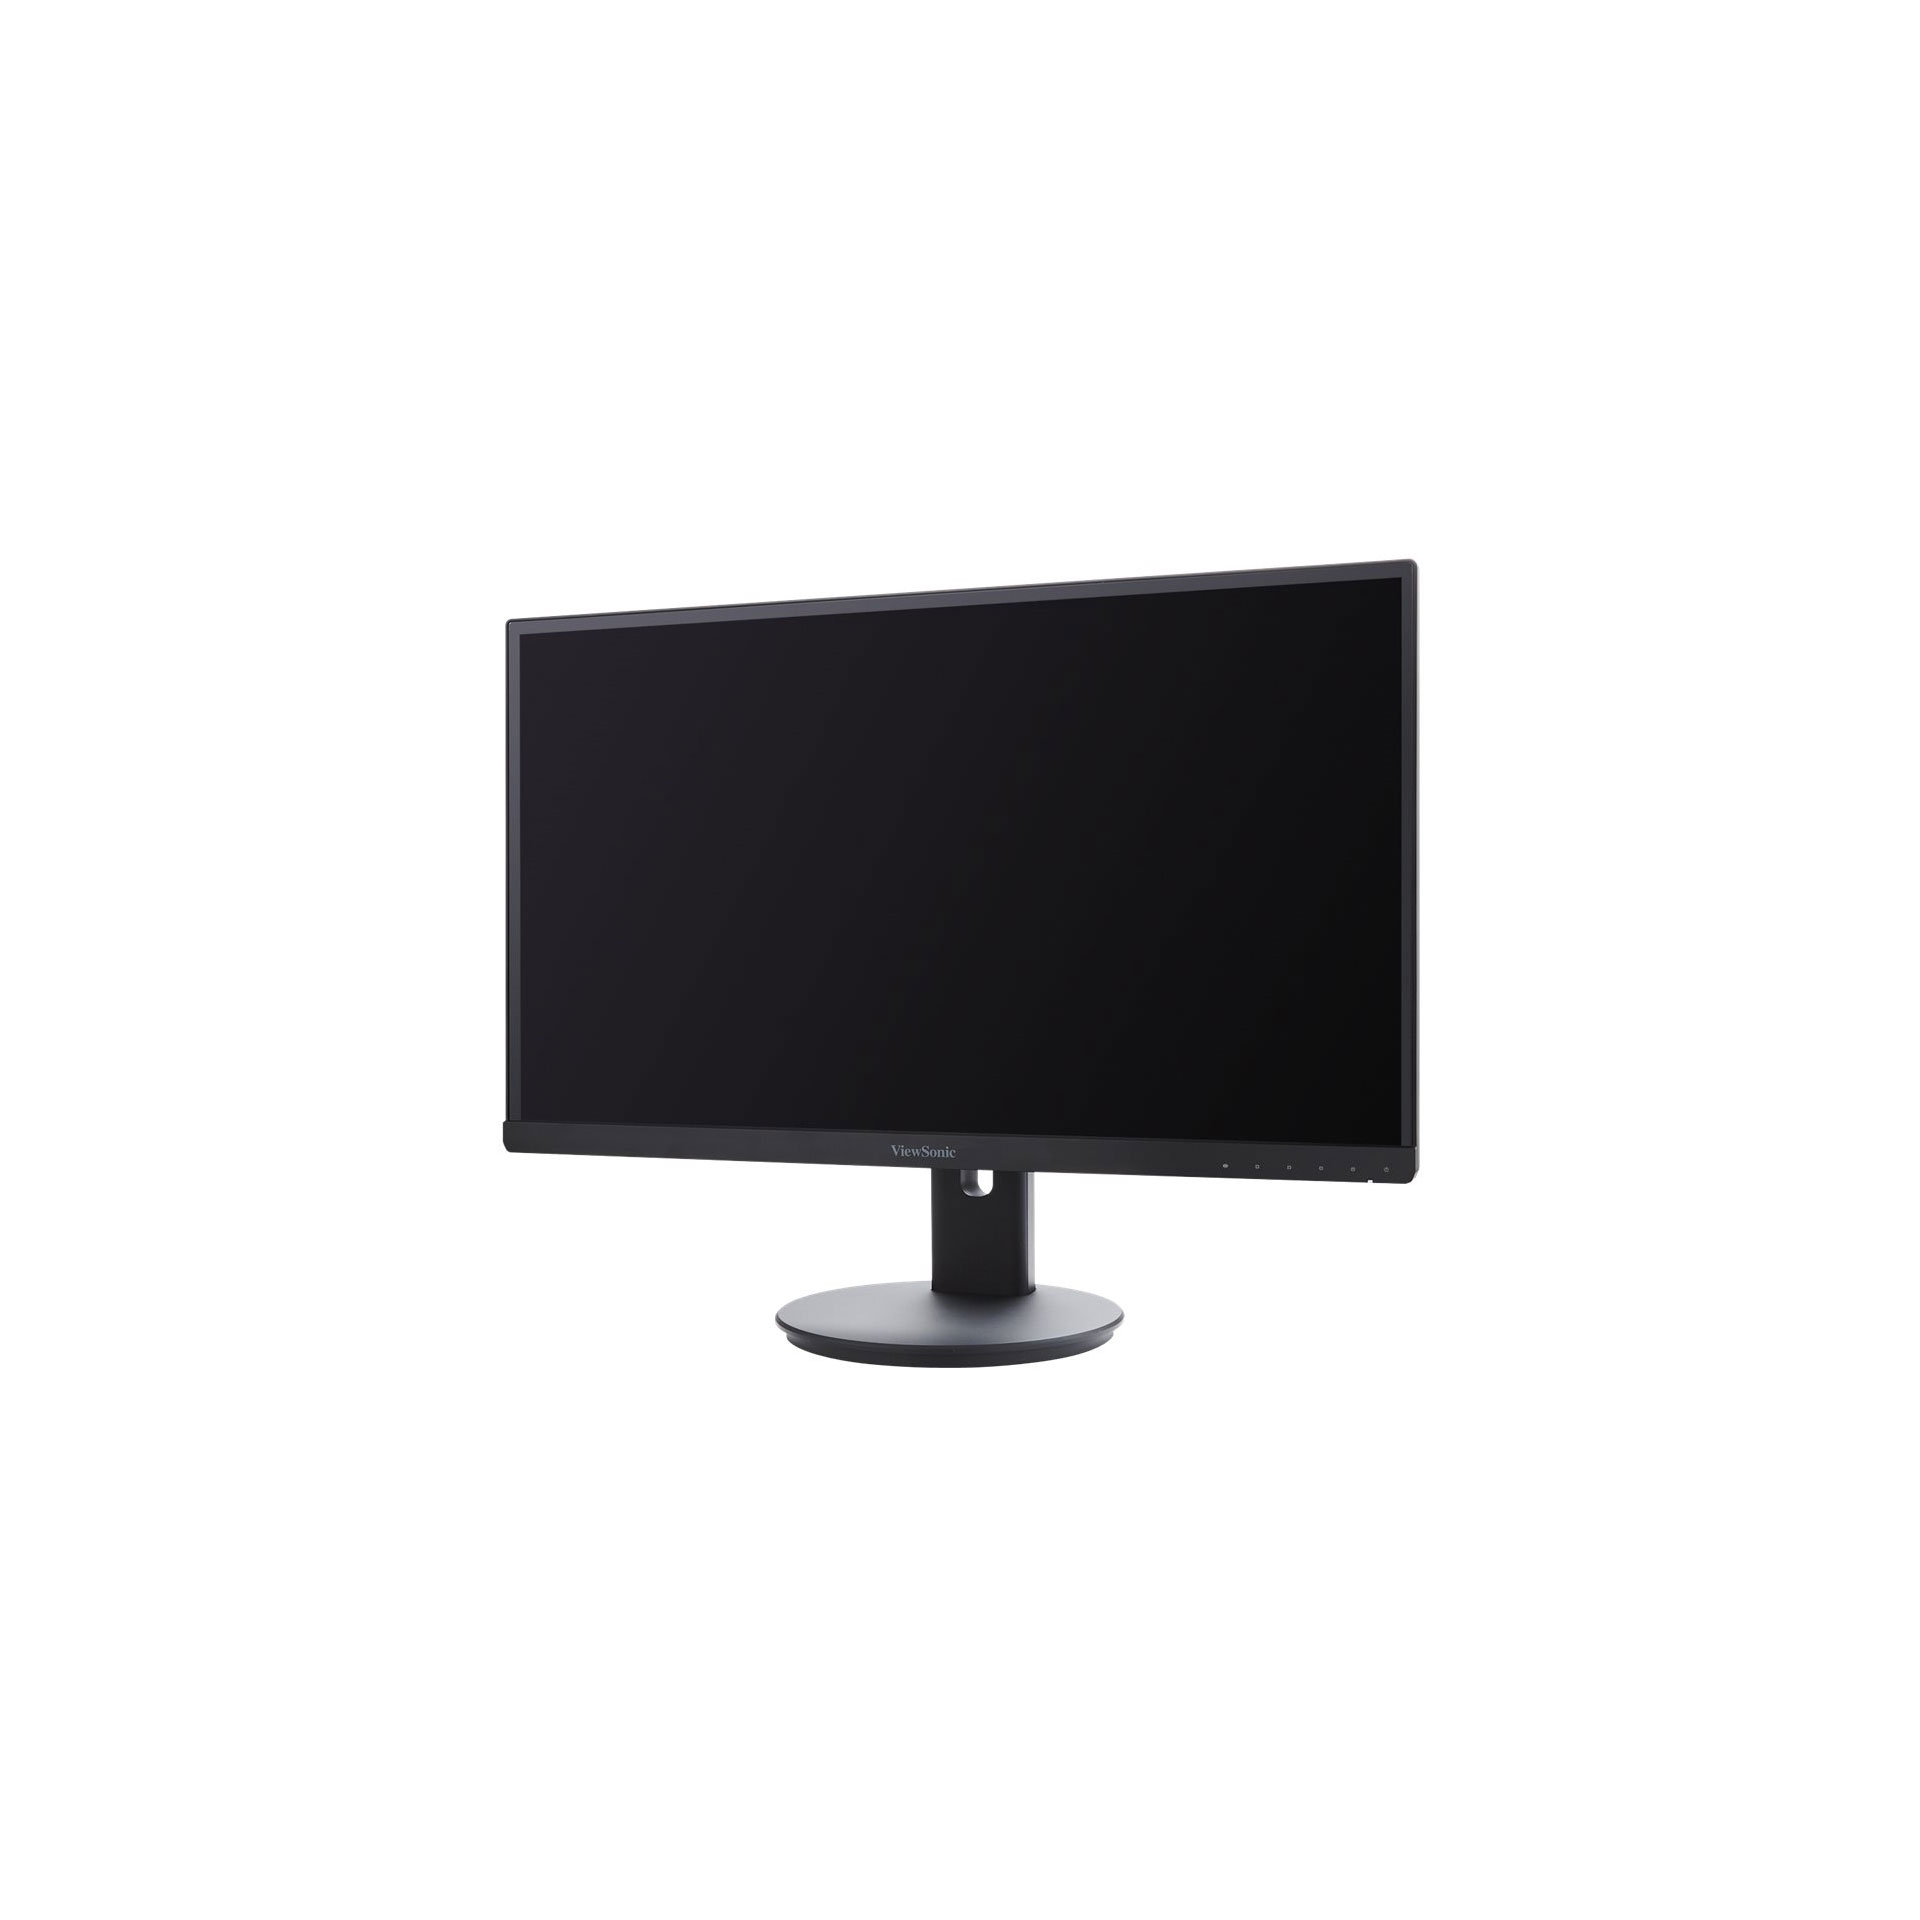 ViewSonic VG2753 27 IPS LED Monitor FullHD 16.7mln colors 16:9